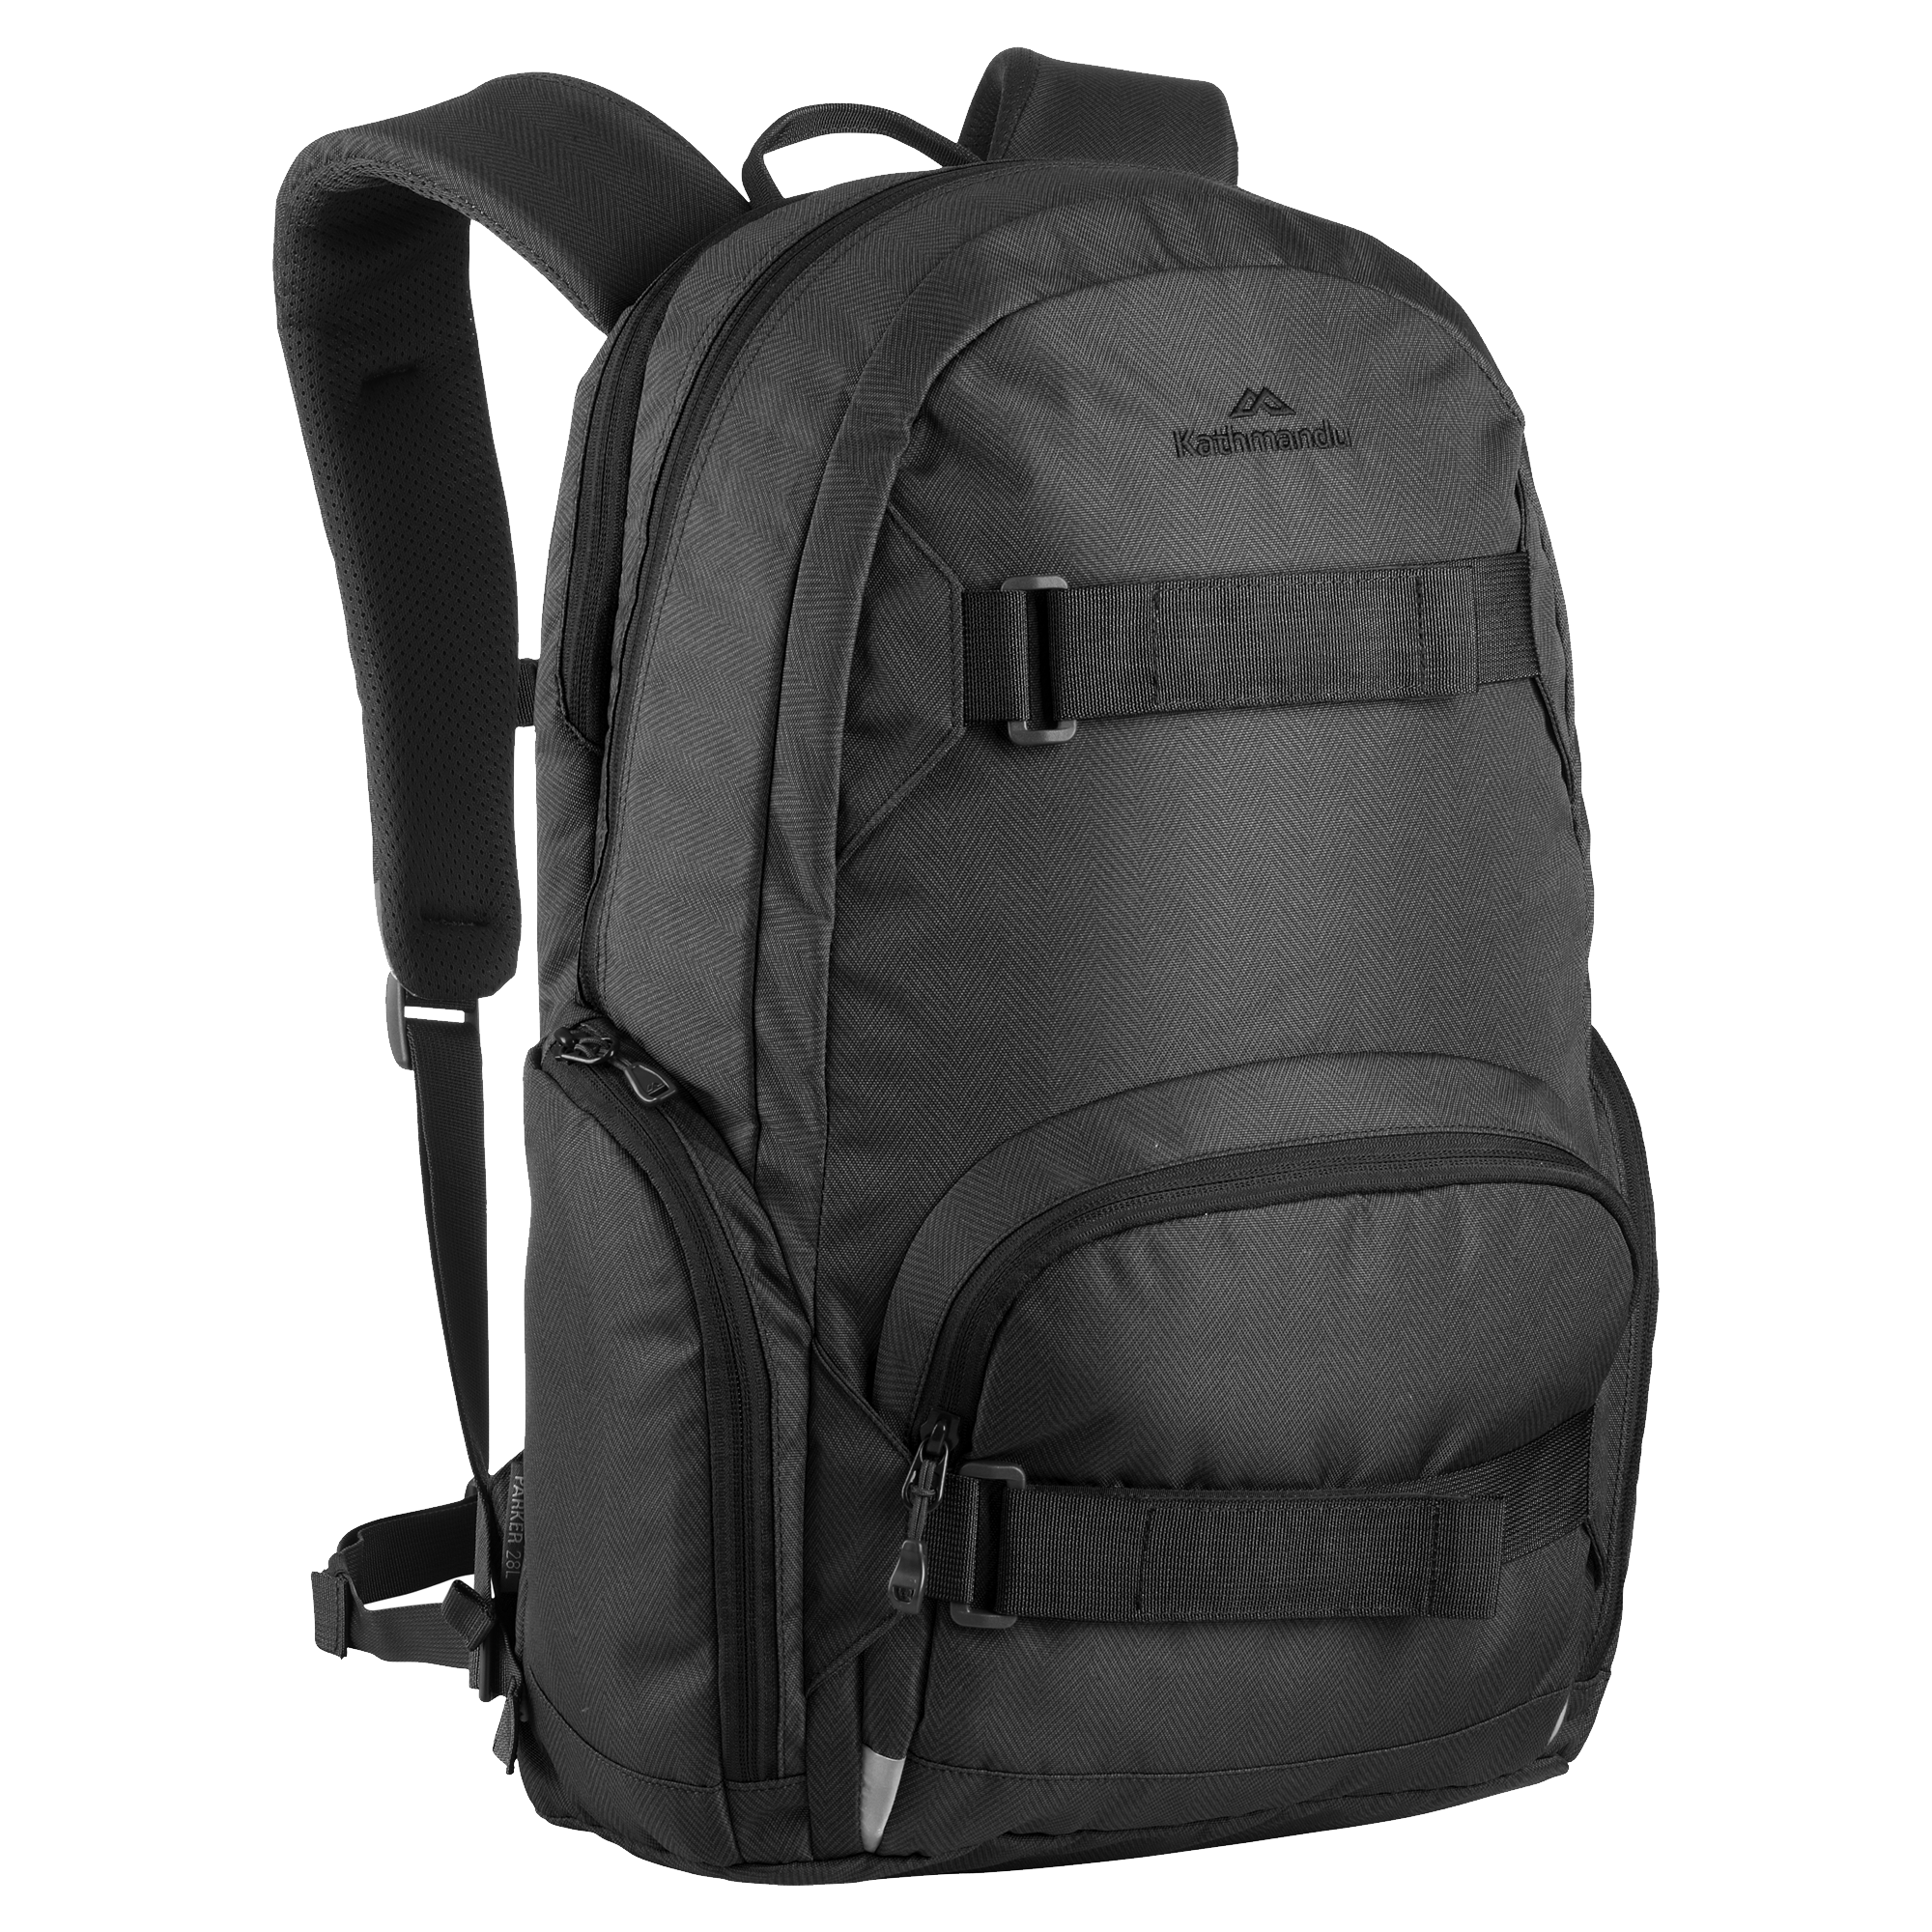 Backpack PNG images free download.